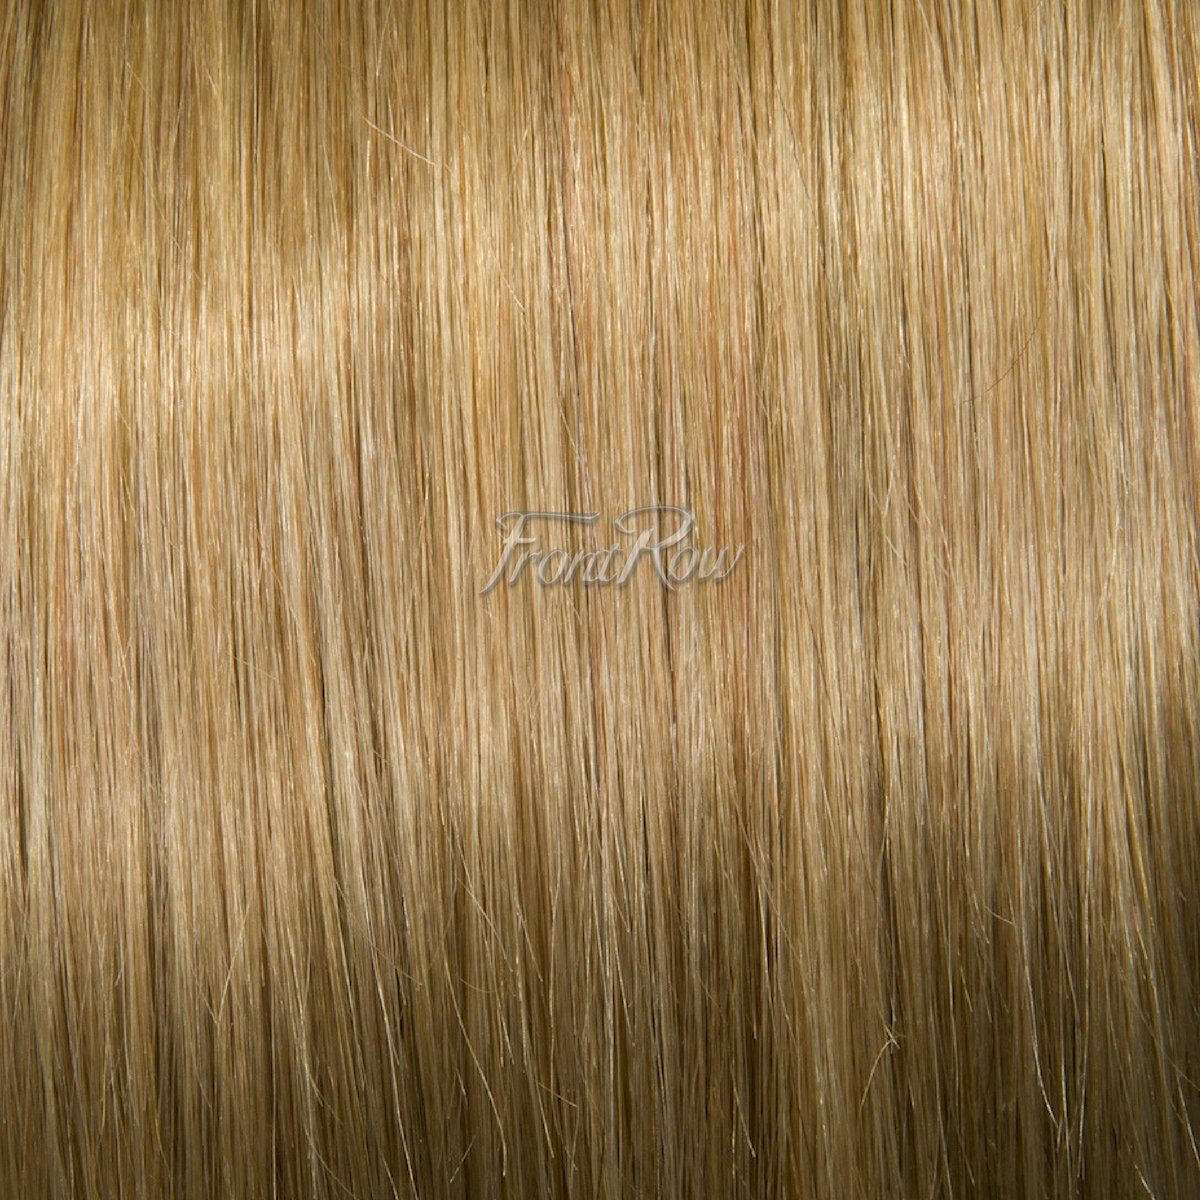 Sandy Blonde 20inch Tapered Ends Clip-ins